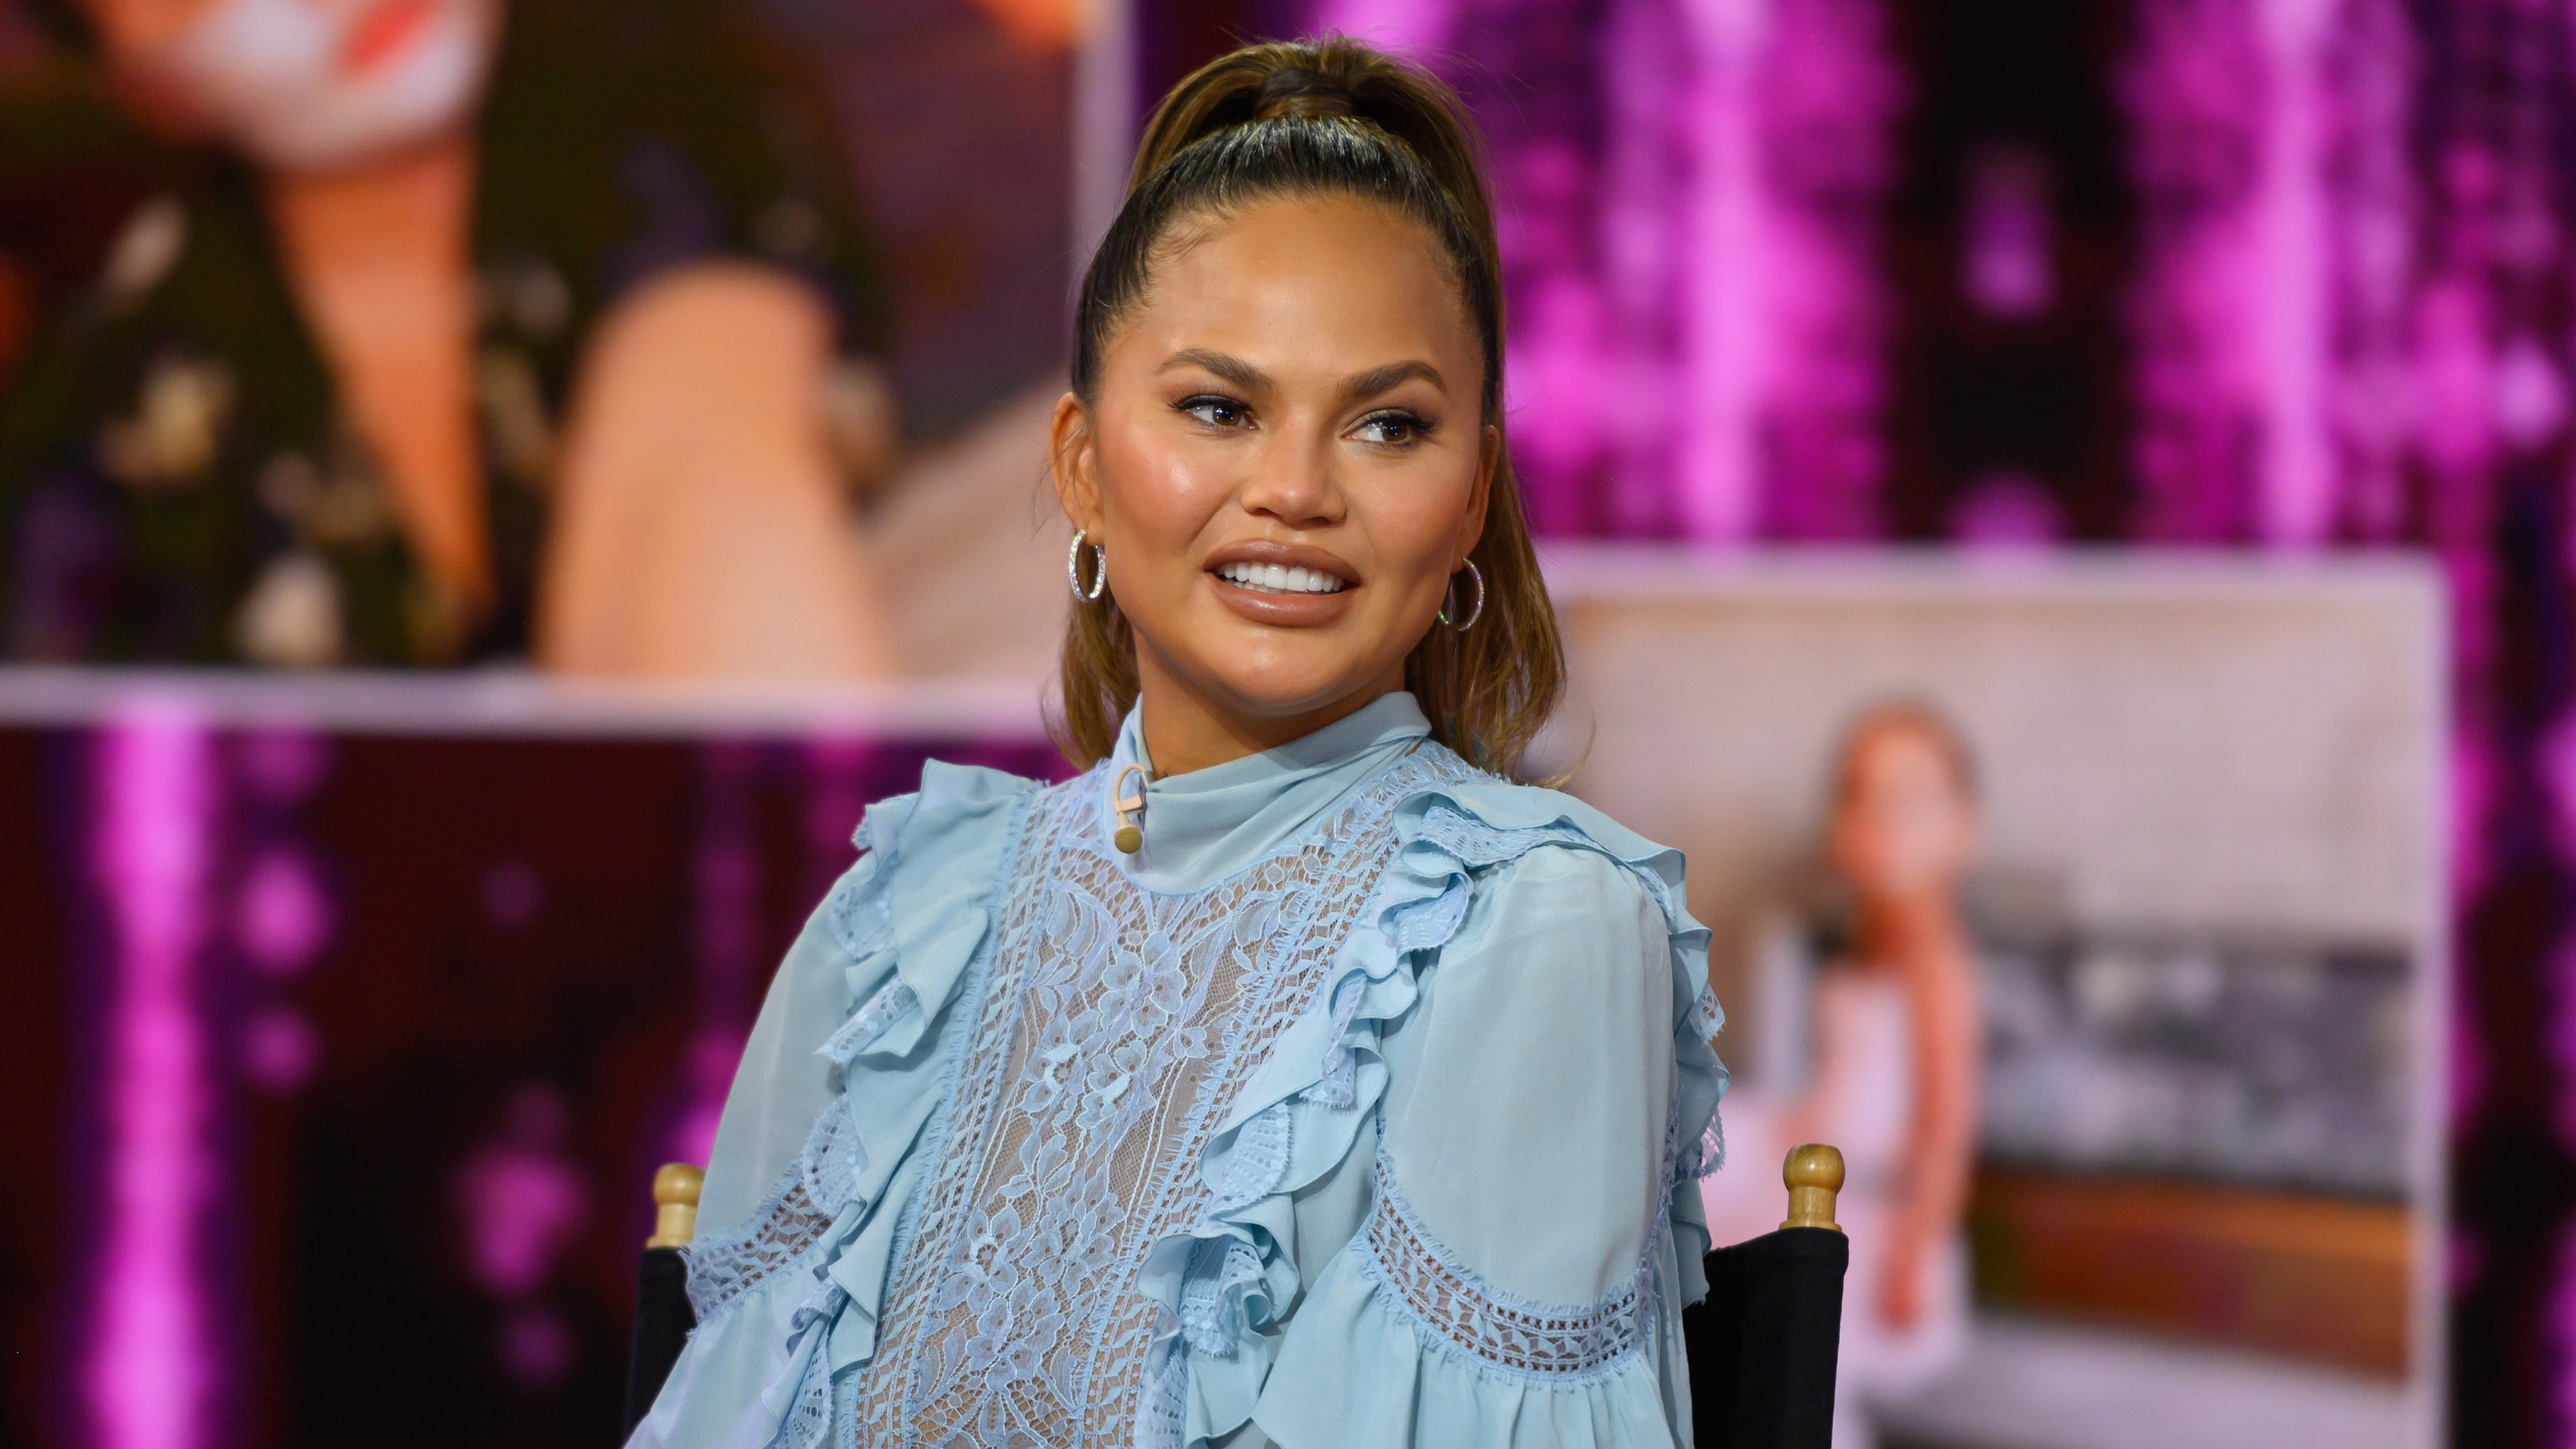 Chrissy Teigen pens emotional essay recounting pregnancy loss: 'That will probably always haunt me'